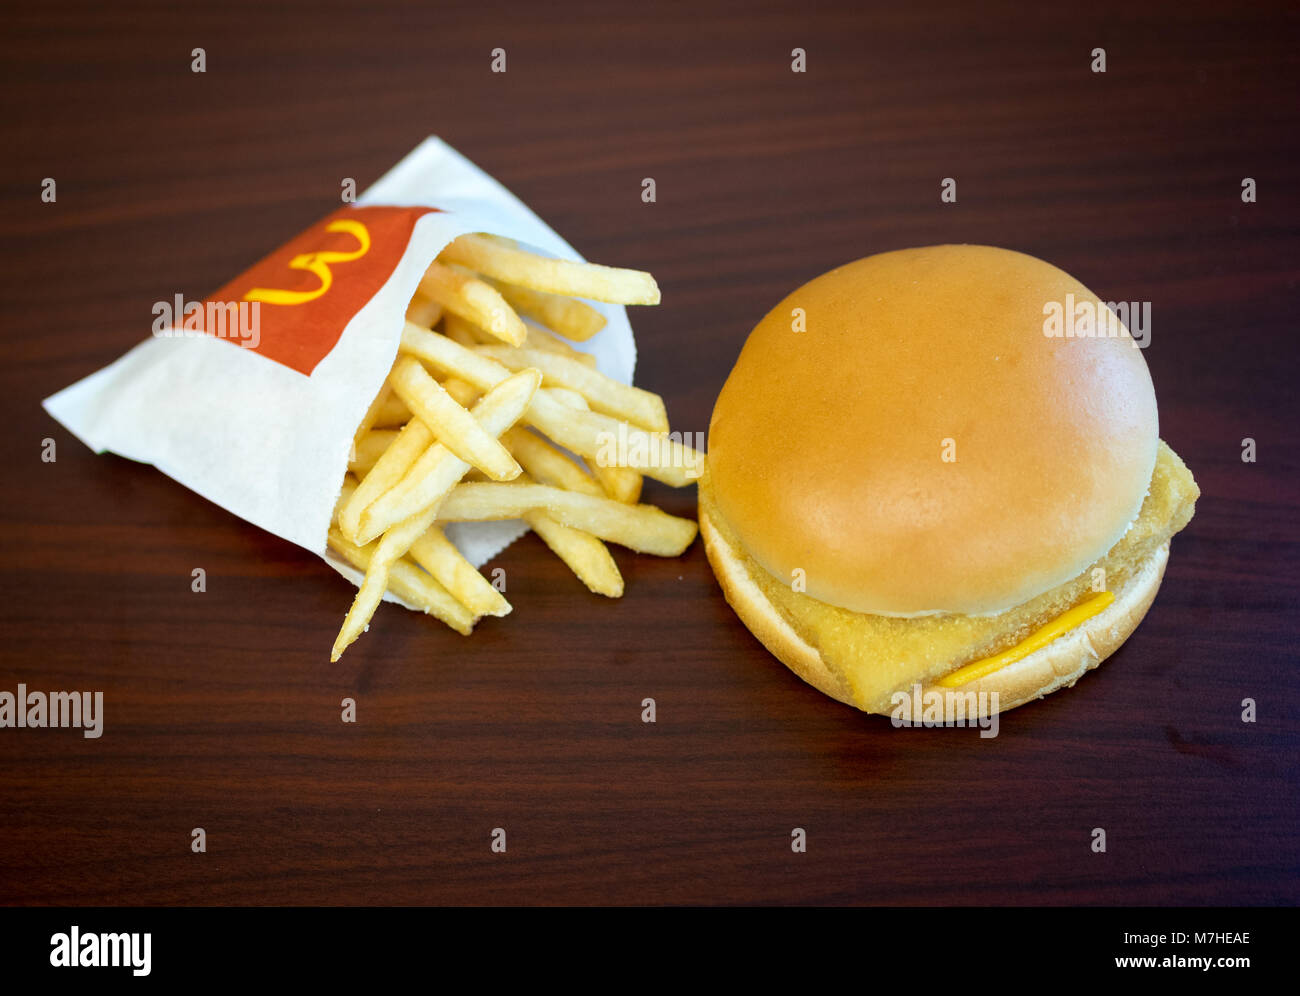 A McDonald's Filet-O-Fish, a fish sandwich, and a small french fries. - Stock Image